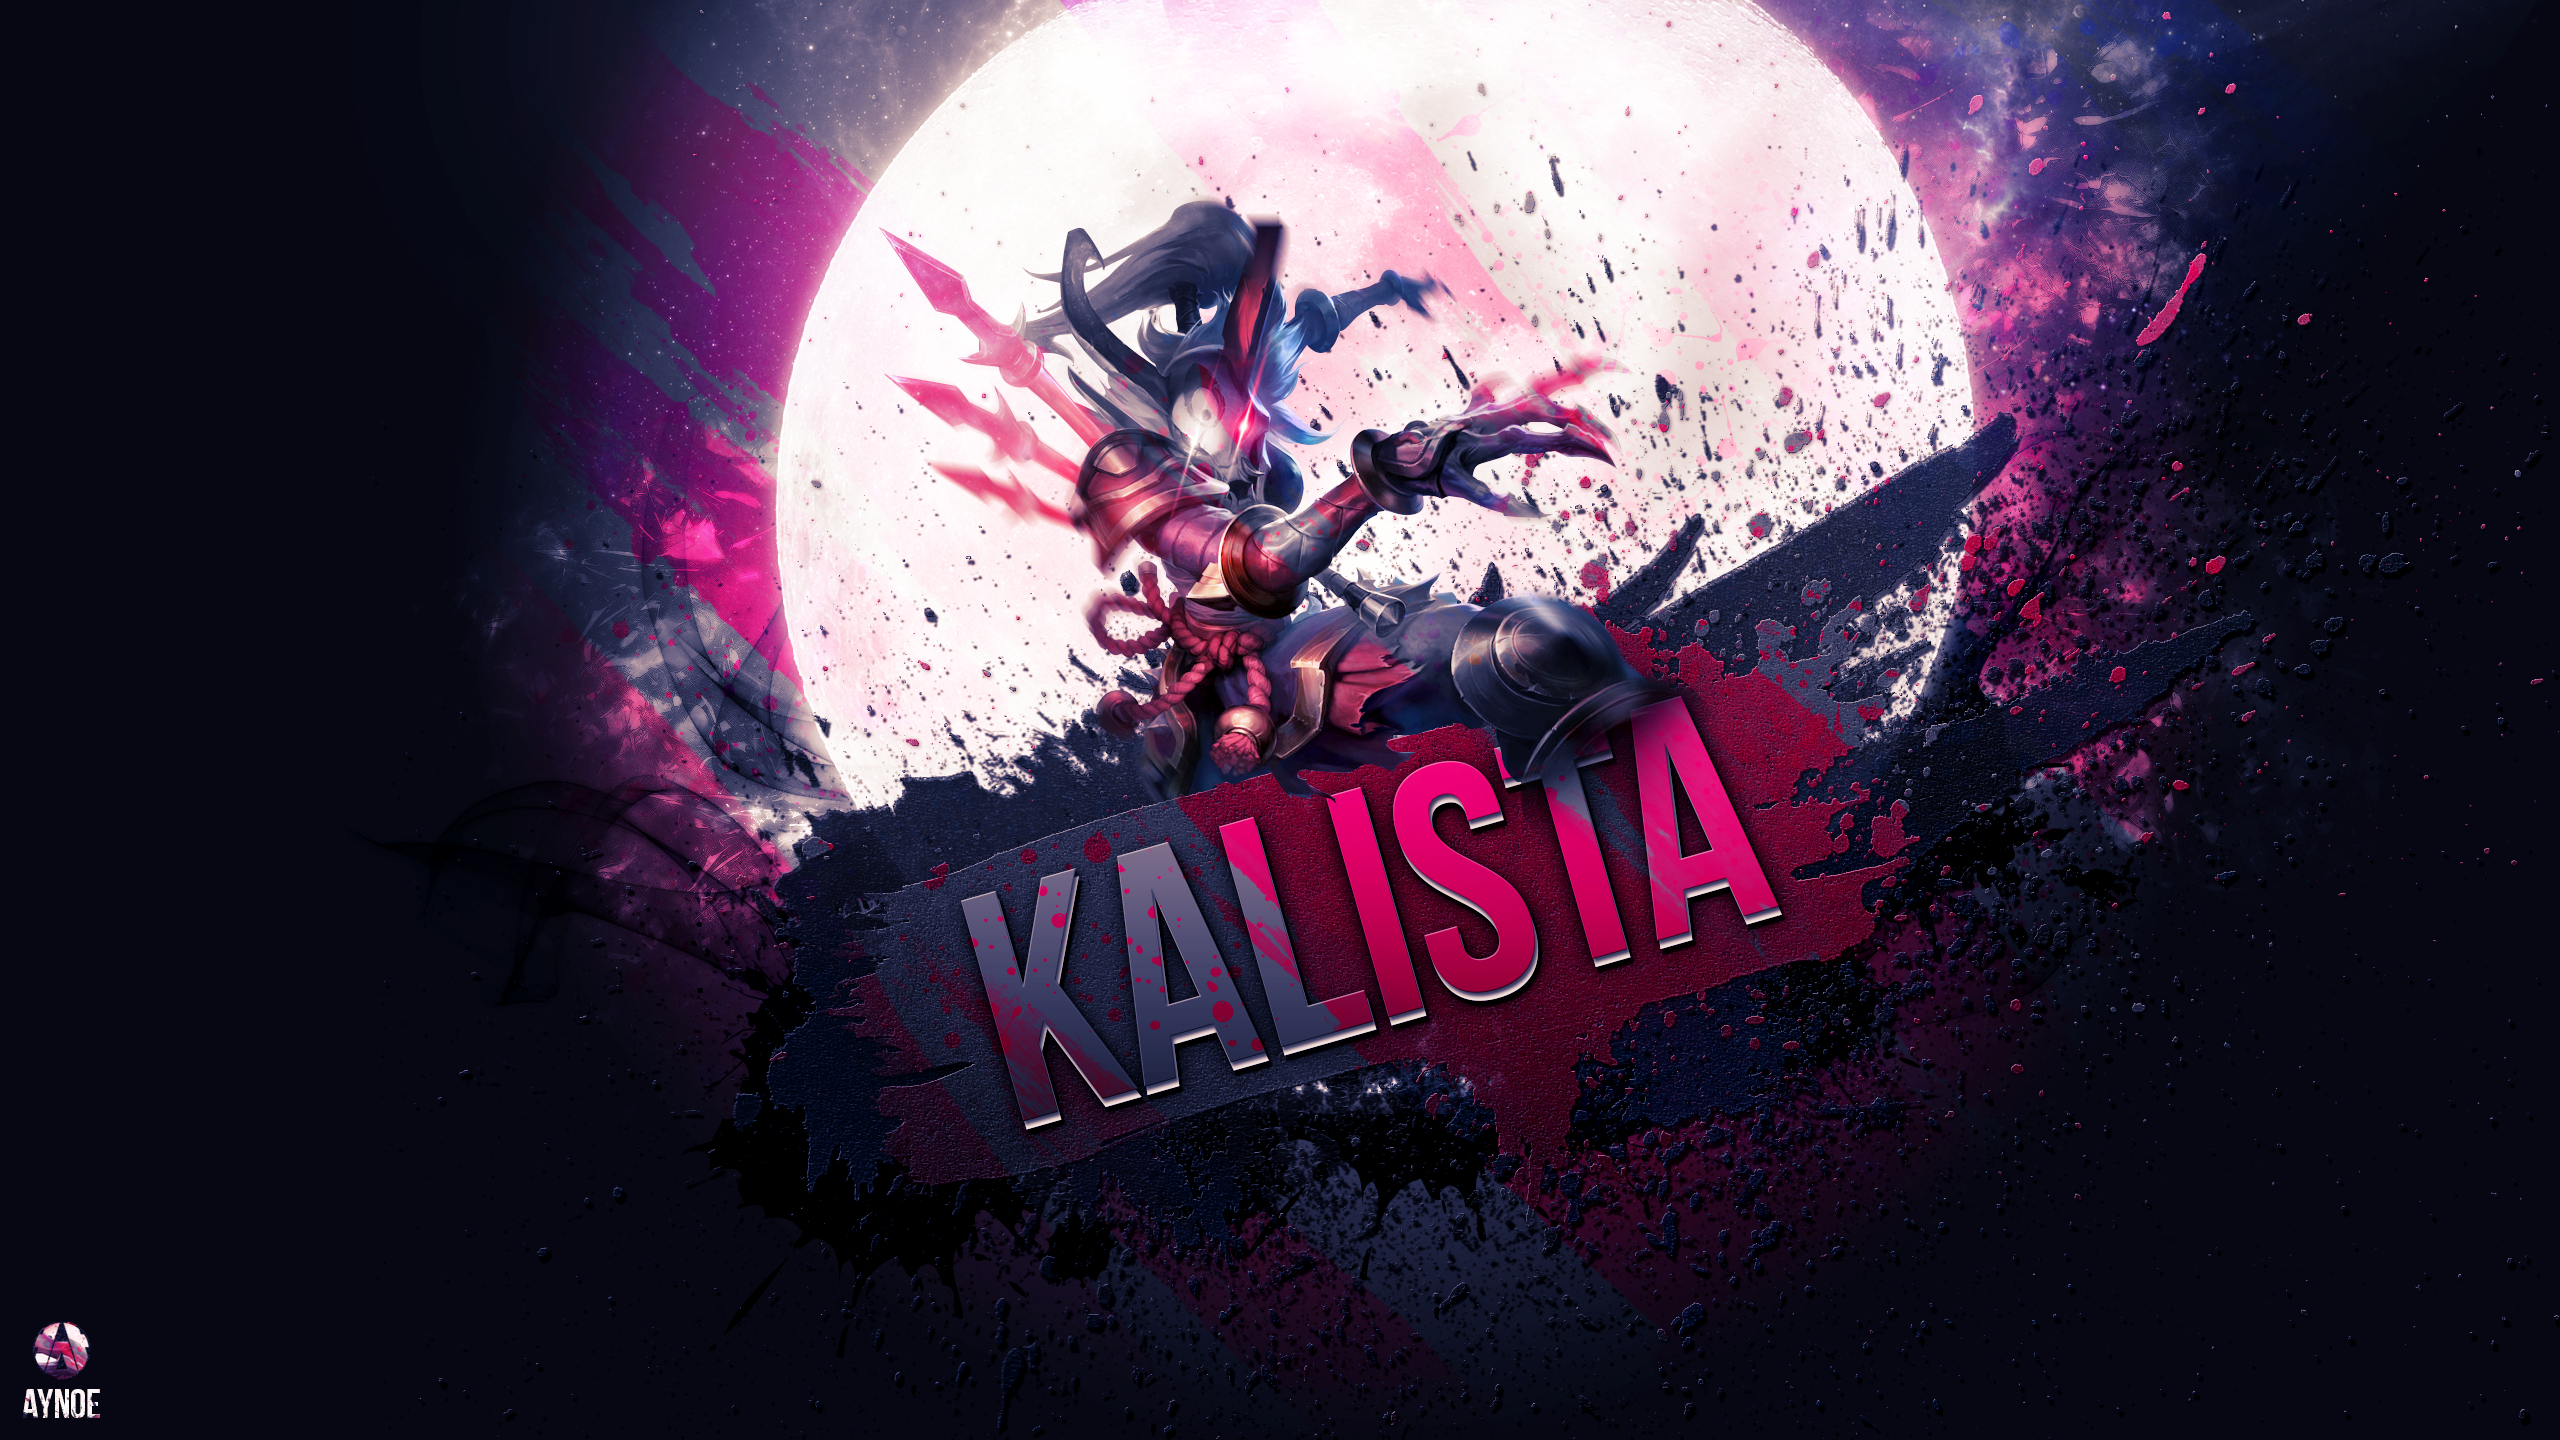 Kalista League Of Legends Minimalist Wallpaper By: Wallpaper By Aynoe On DeviantArt